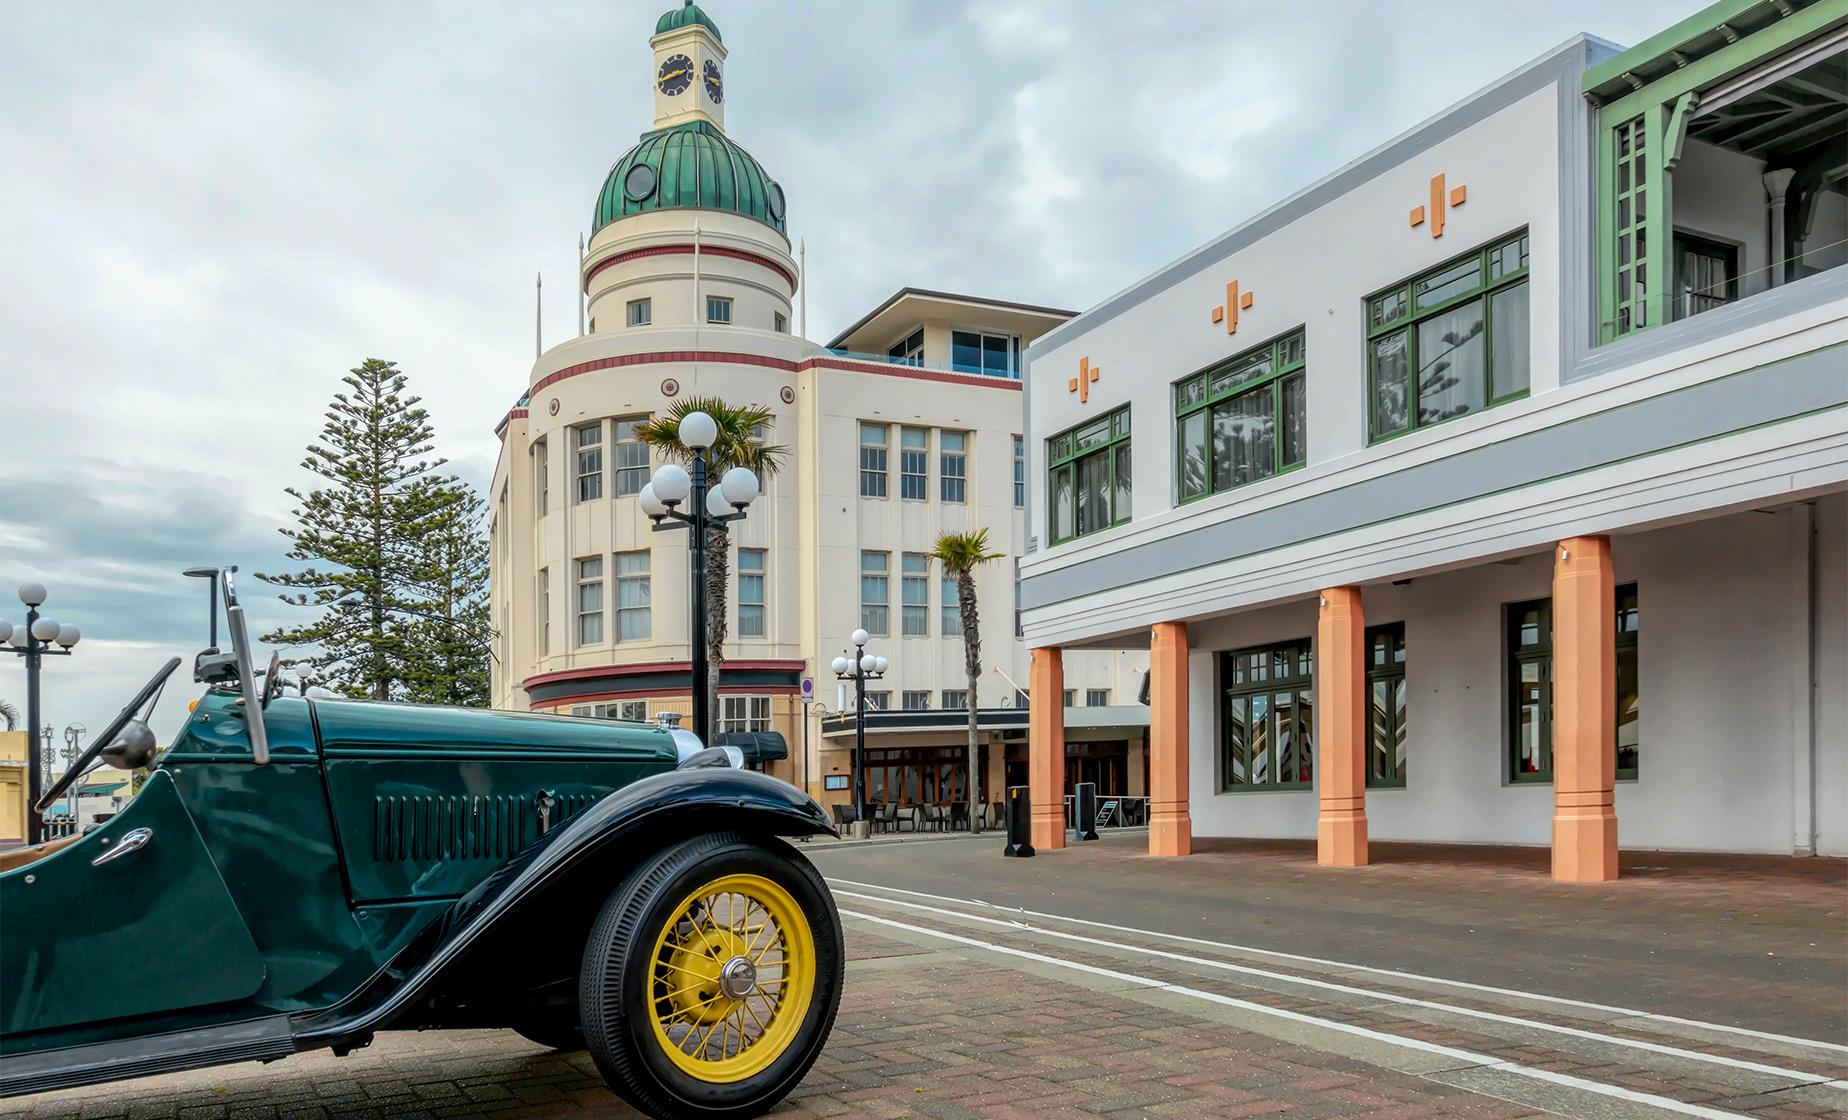 Private Tour of Napier with Optional Classic Car